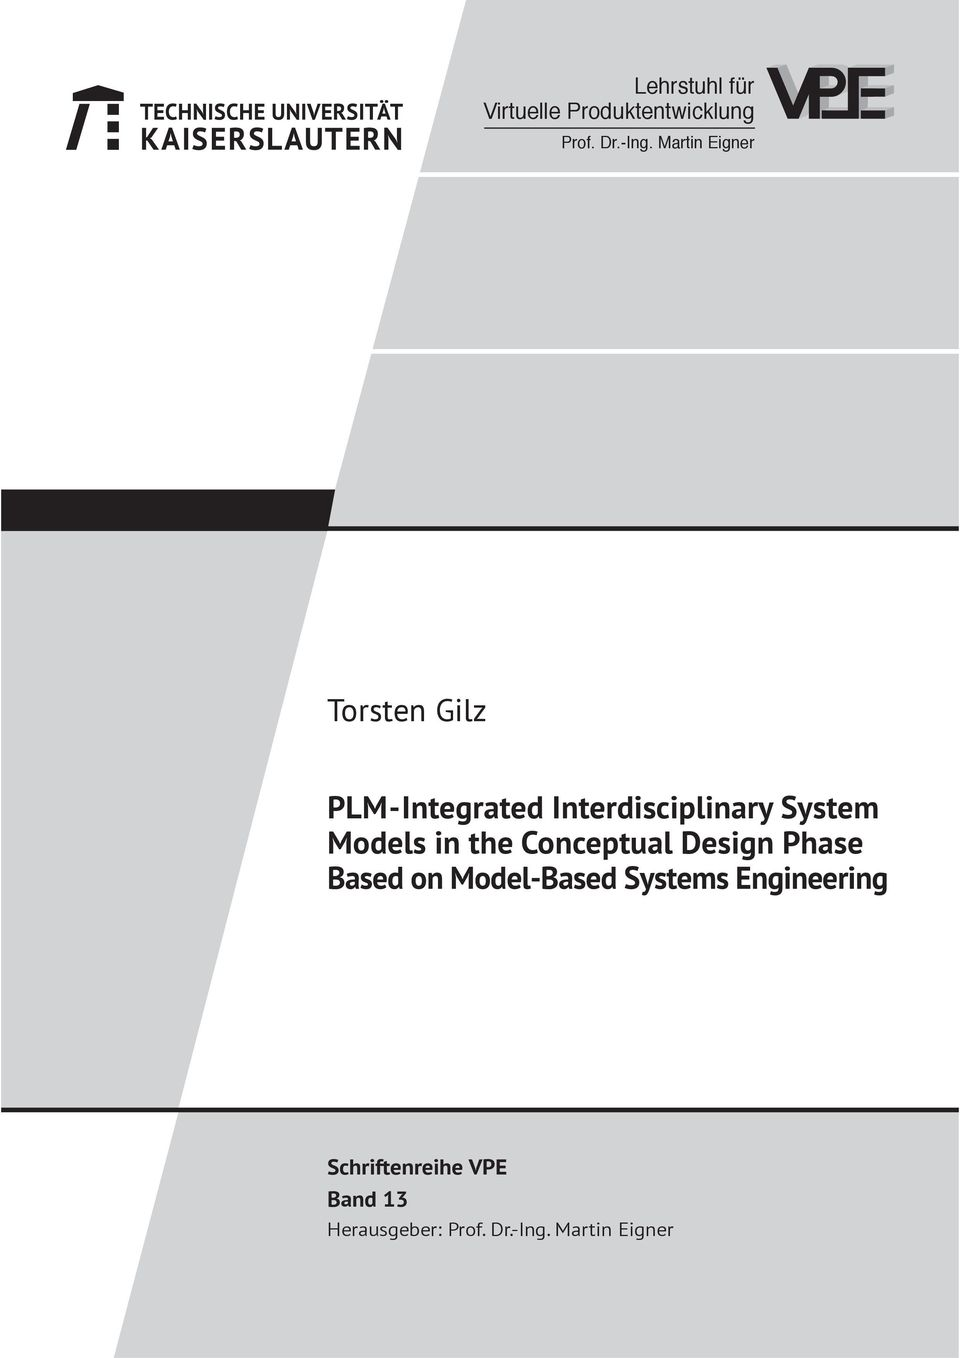 Models in the Conceptual Design Phase Based on Model-Based Systems